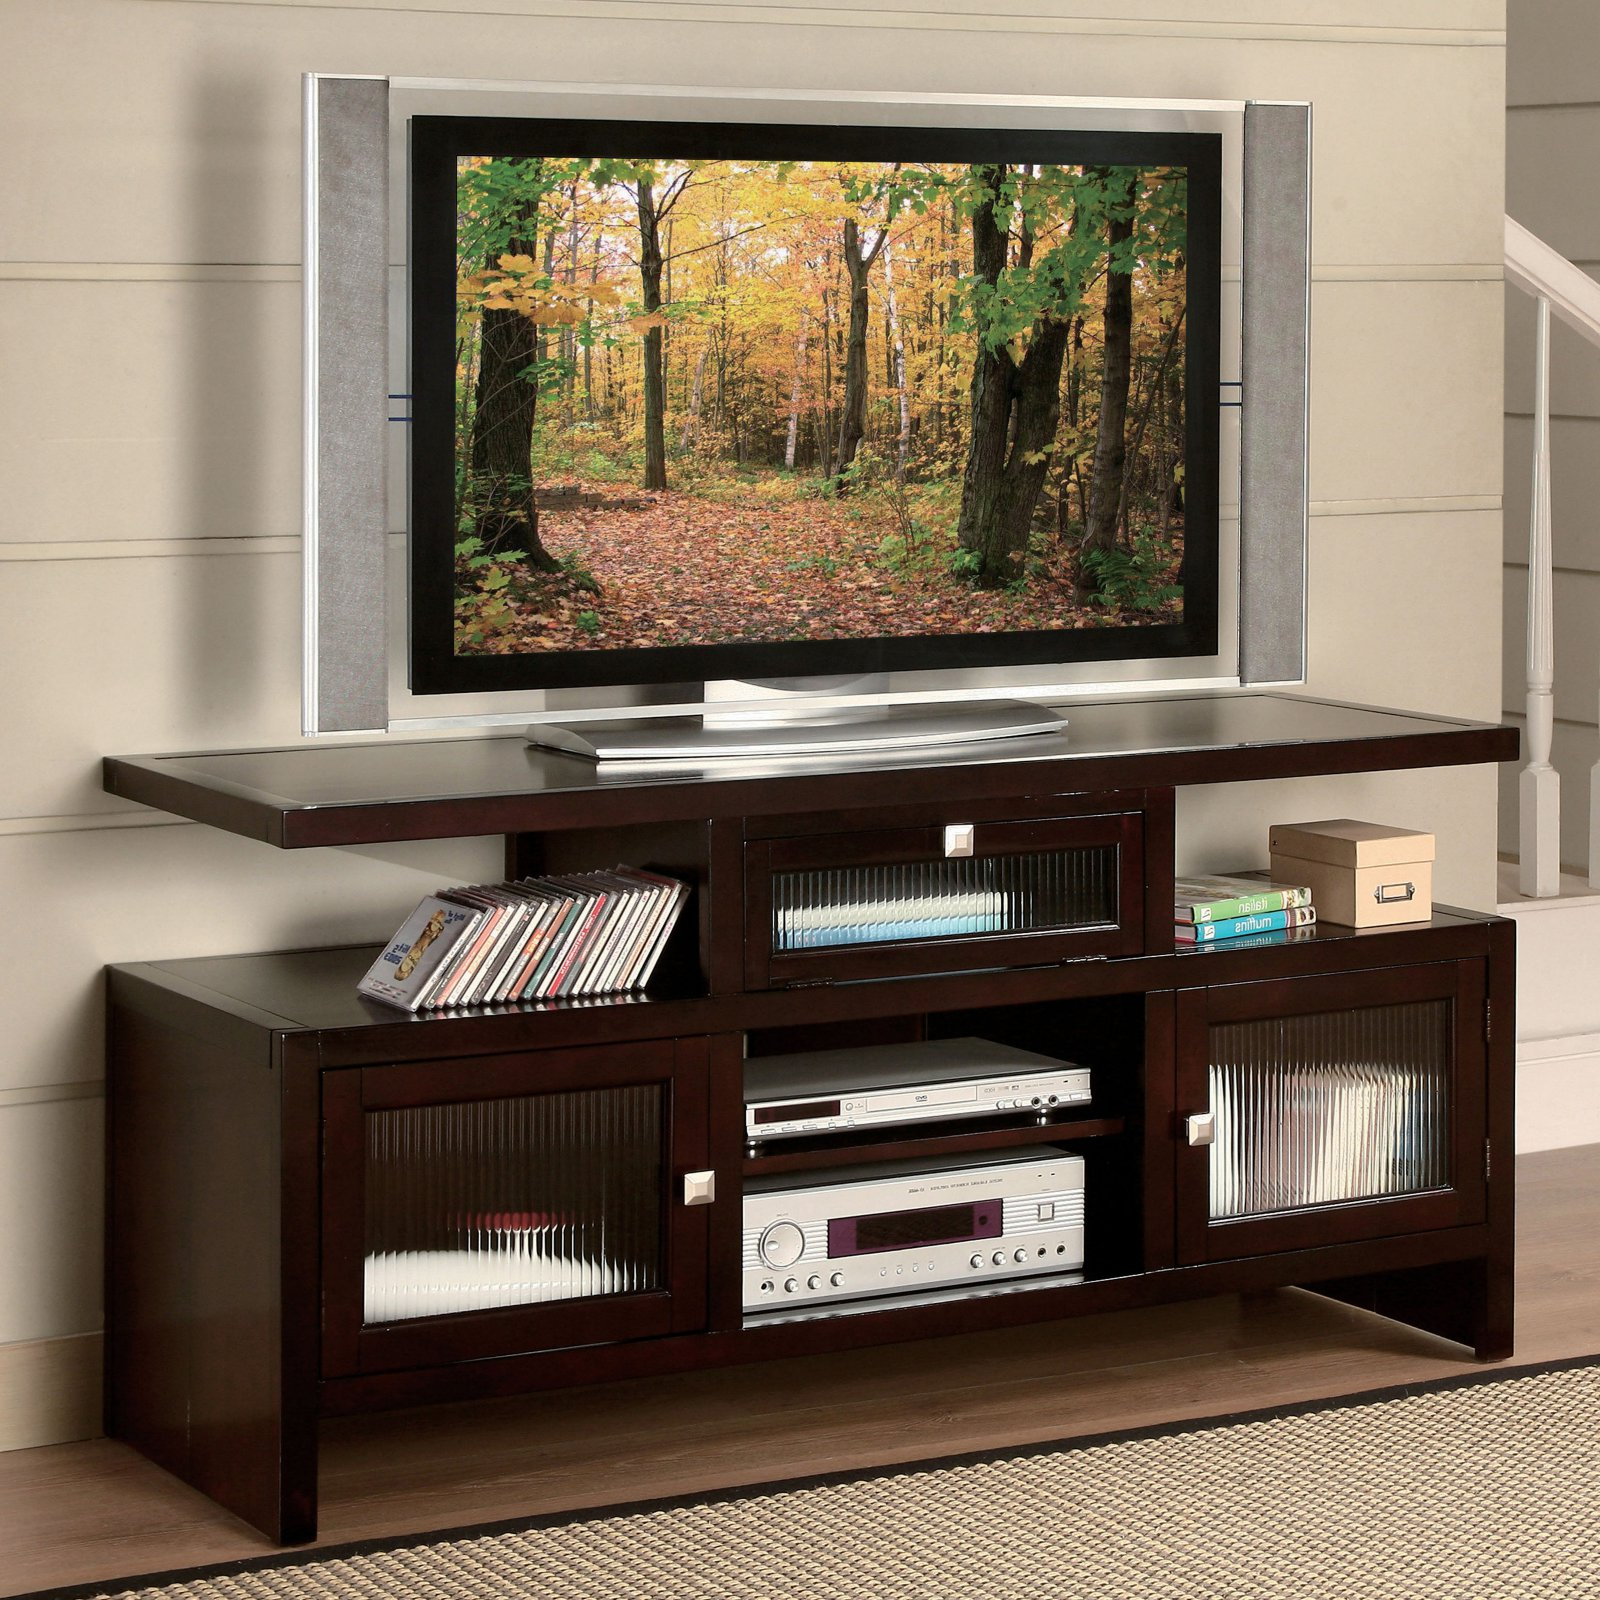 """Well Liked Acme Jupiter Foldable Tv Stand For Tvs Up To 70"""", Espresso For Broward Tv Stands For Tvs Up To 70"""" (View 14 of 25)"""